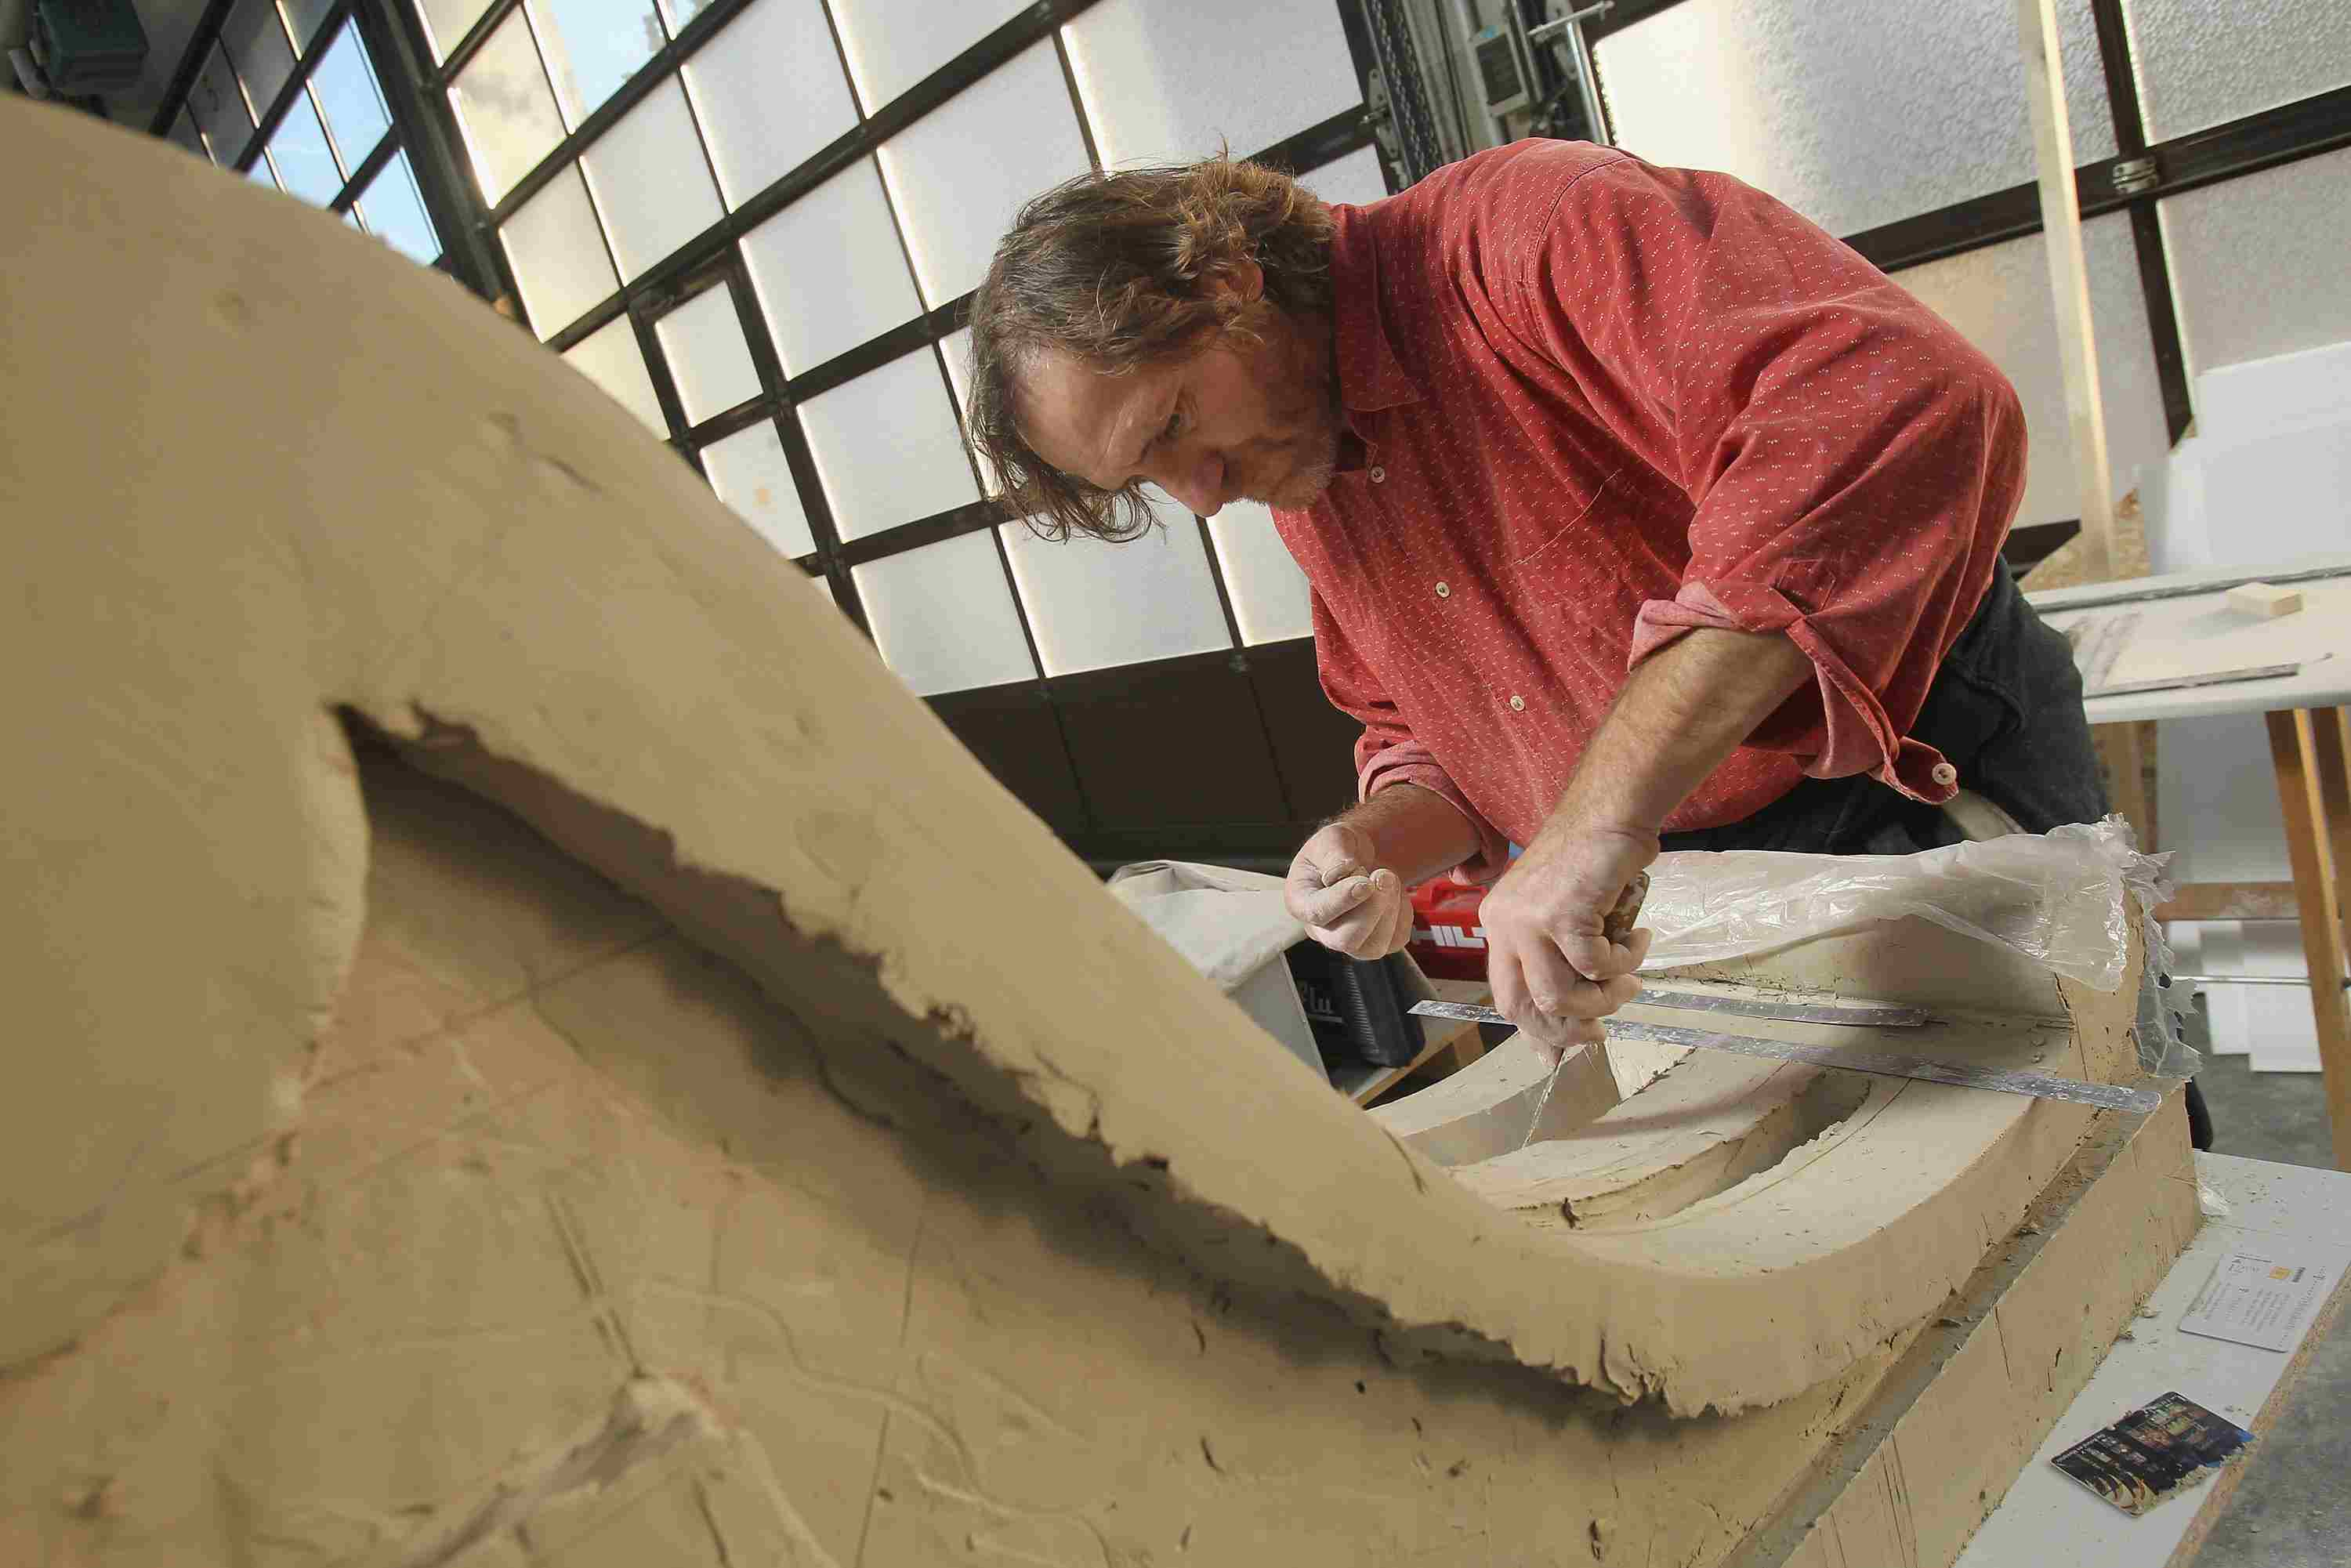 man in red shirt sculpting a large corbel from clay